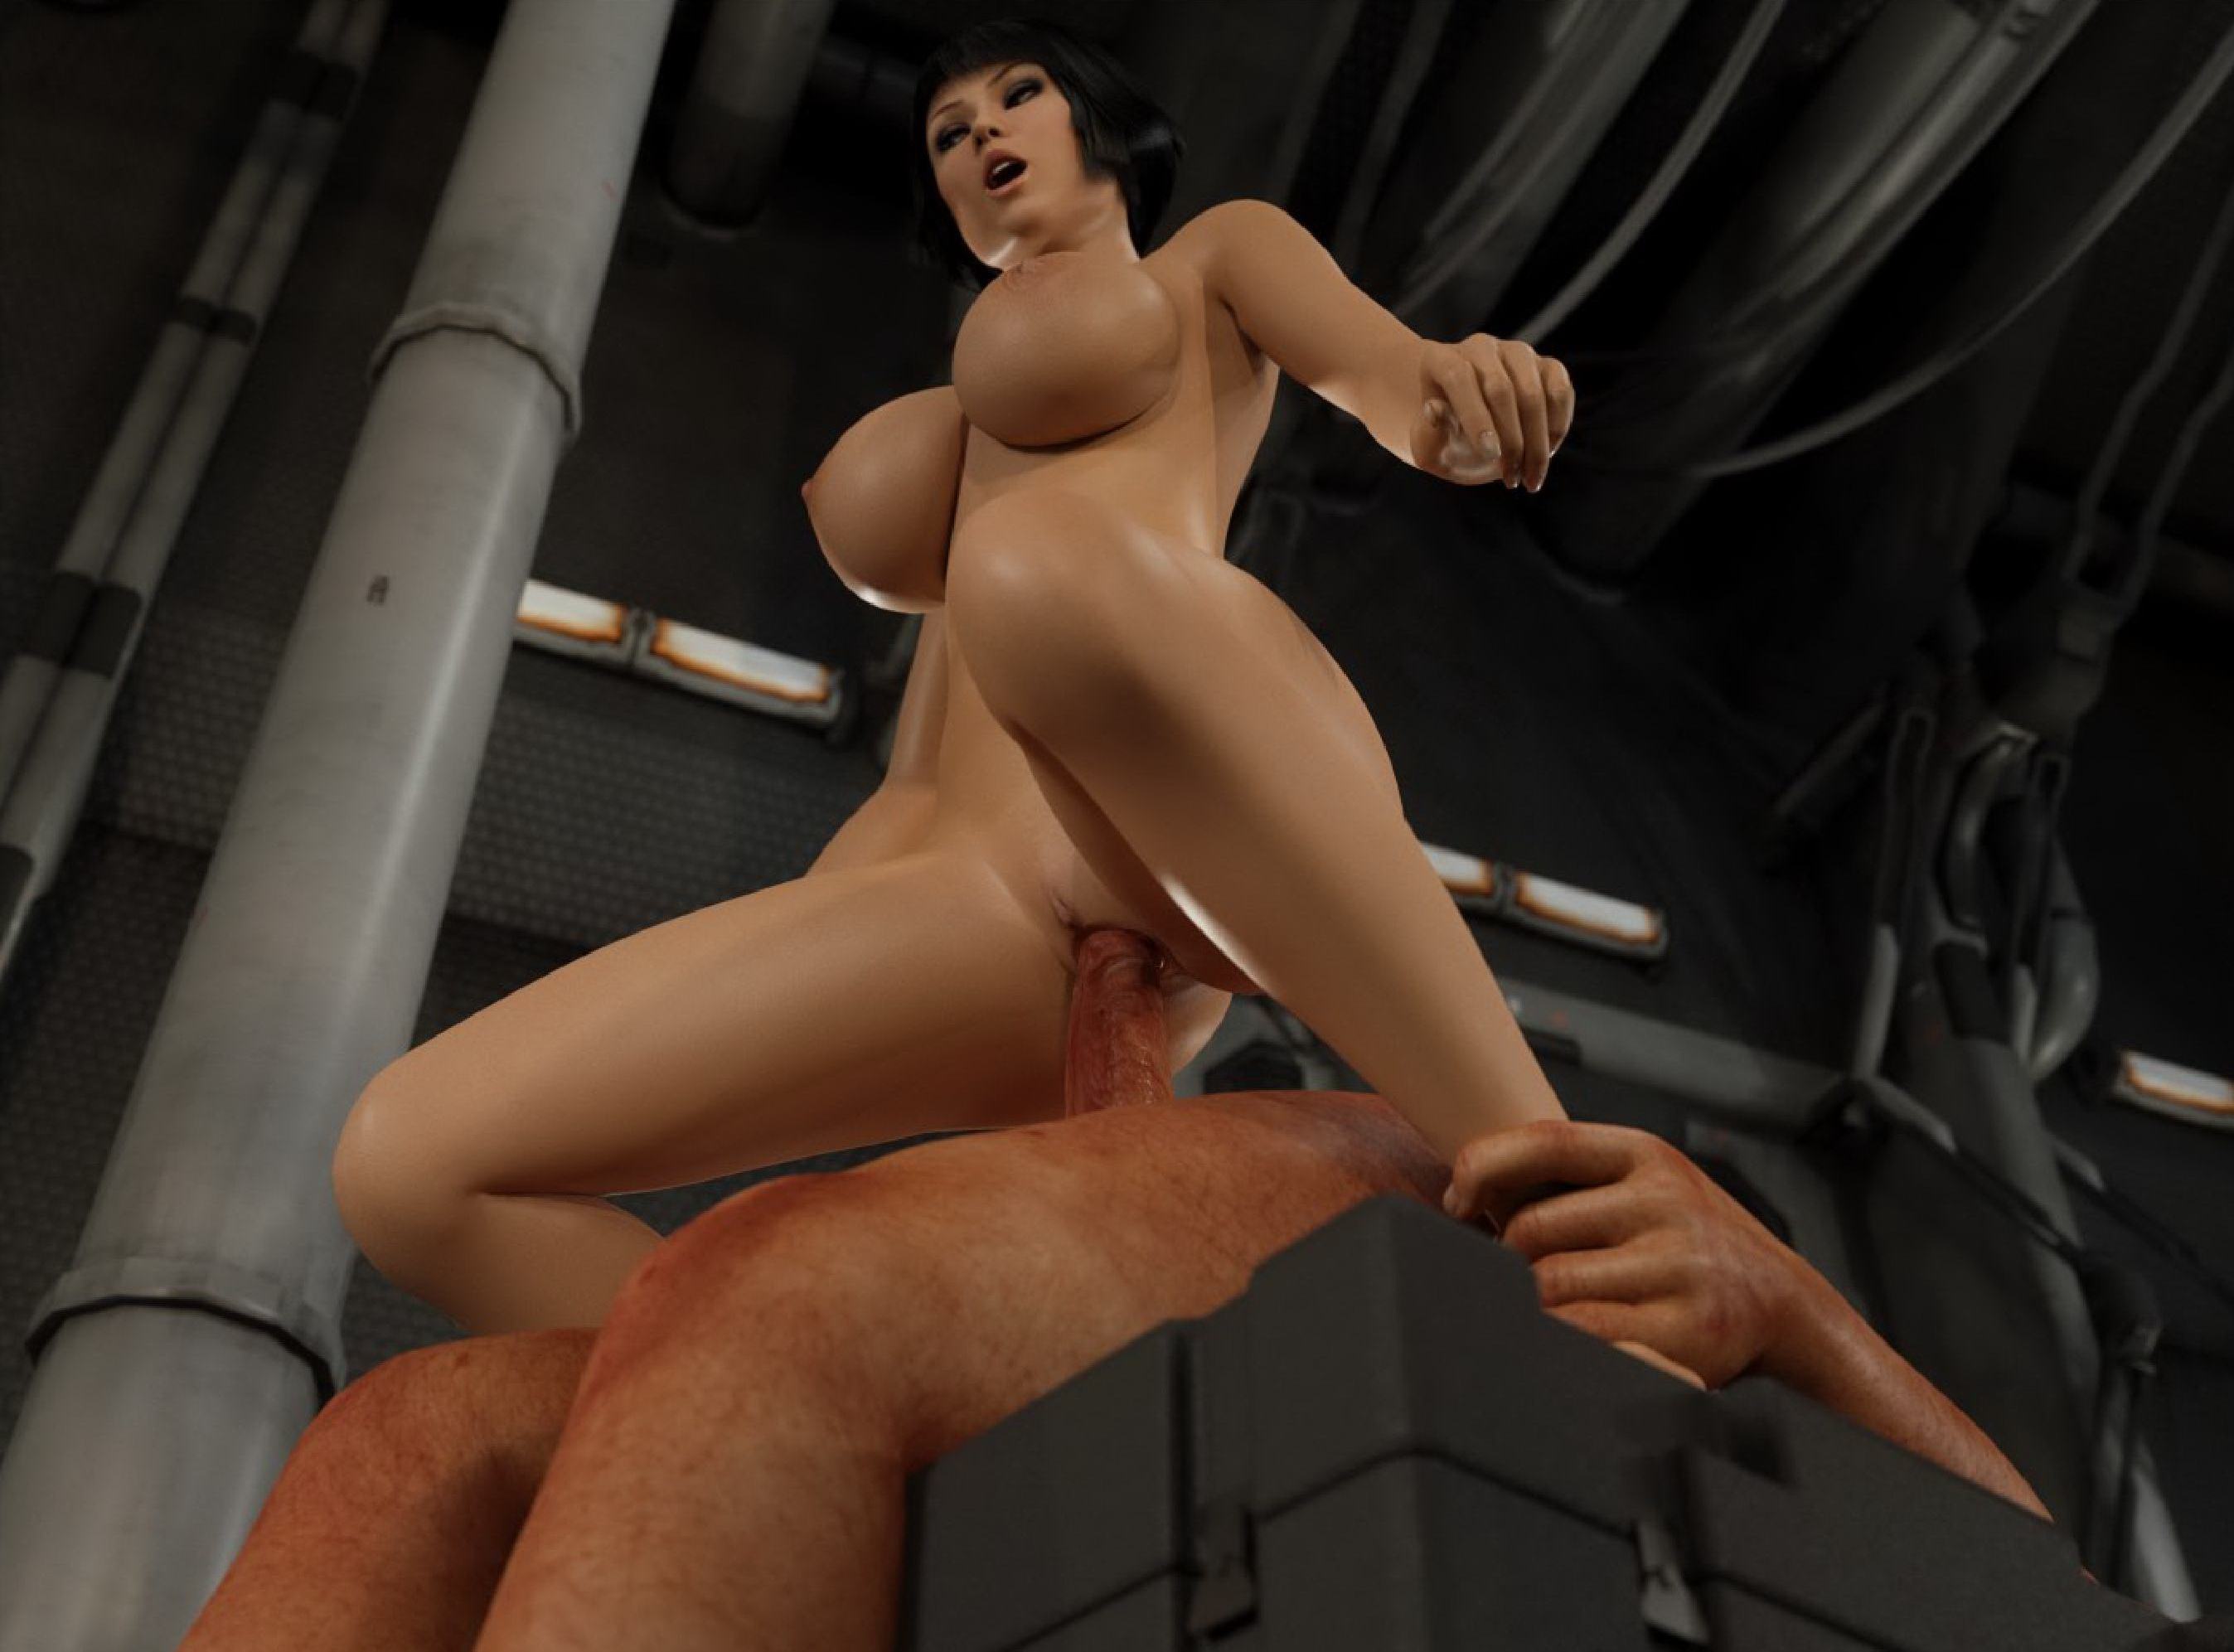 Hot 3d lara croft sex gallary sexy clip